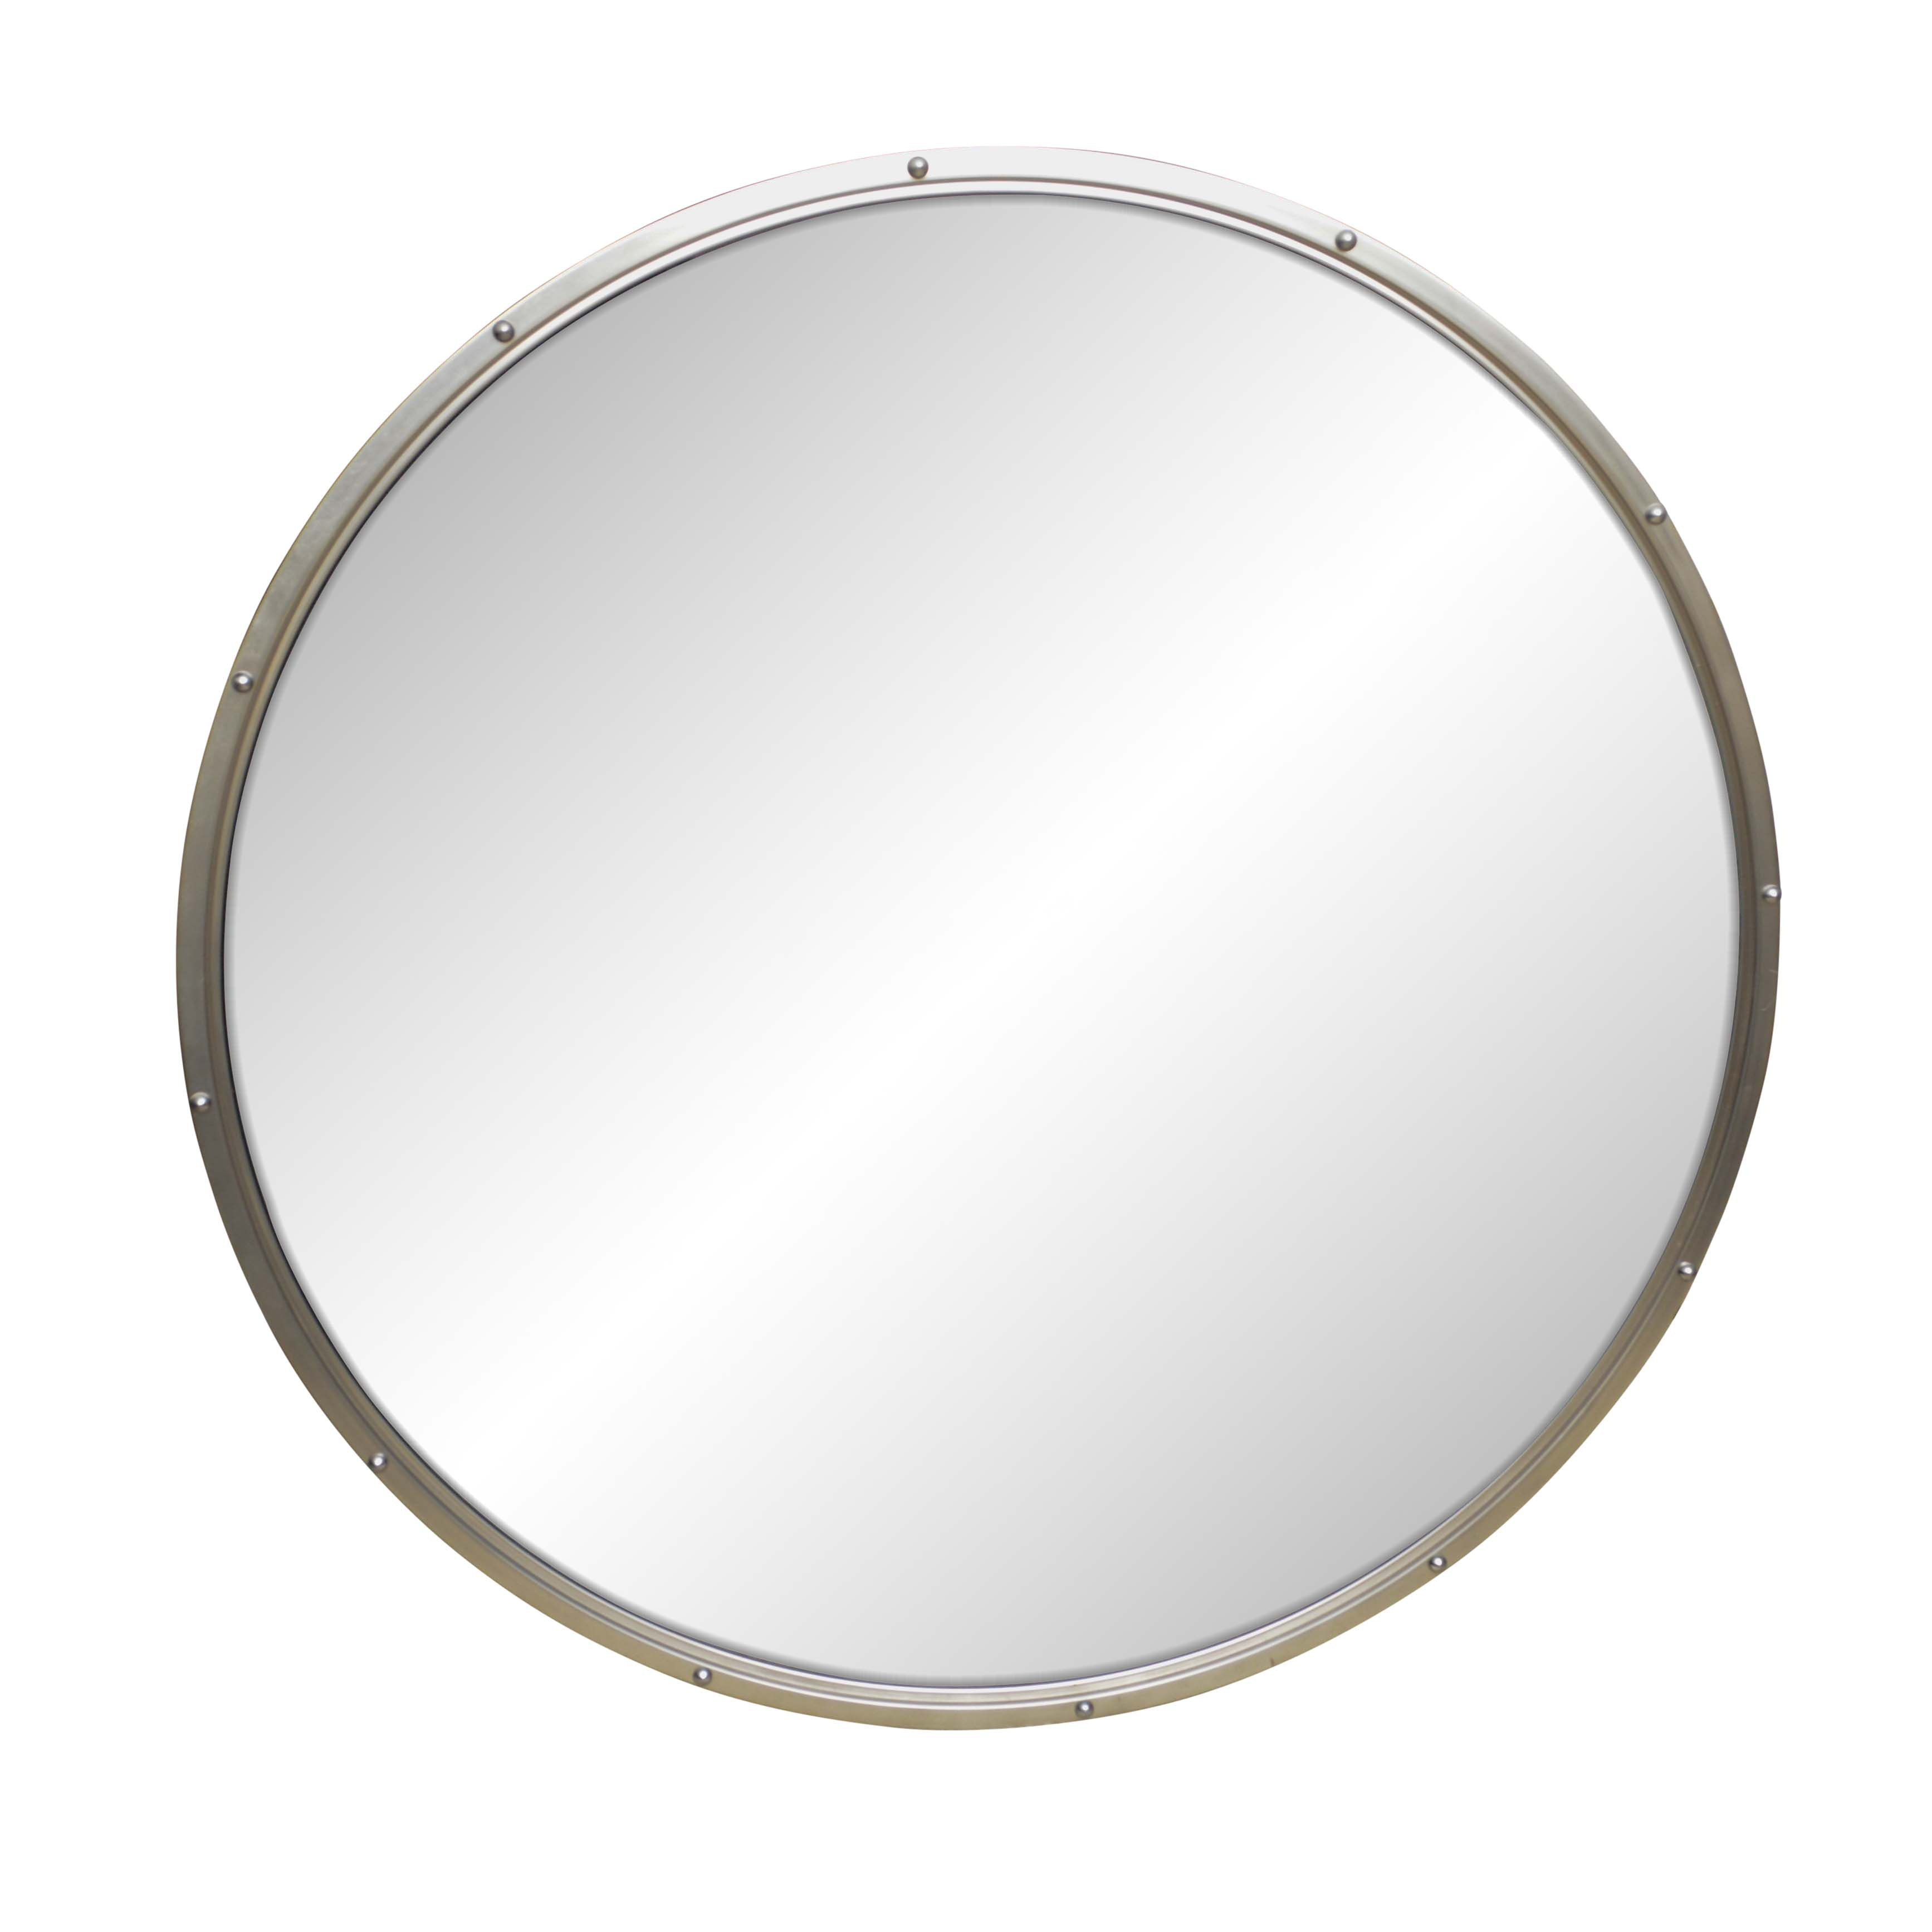 Riveted Silver Toned Metal Framed Round Wall Mirror